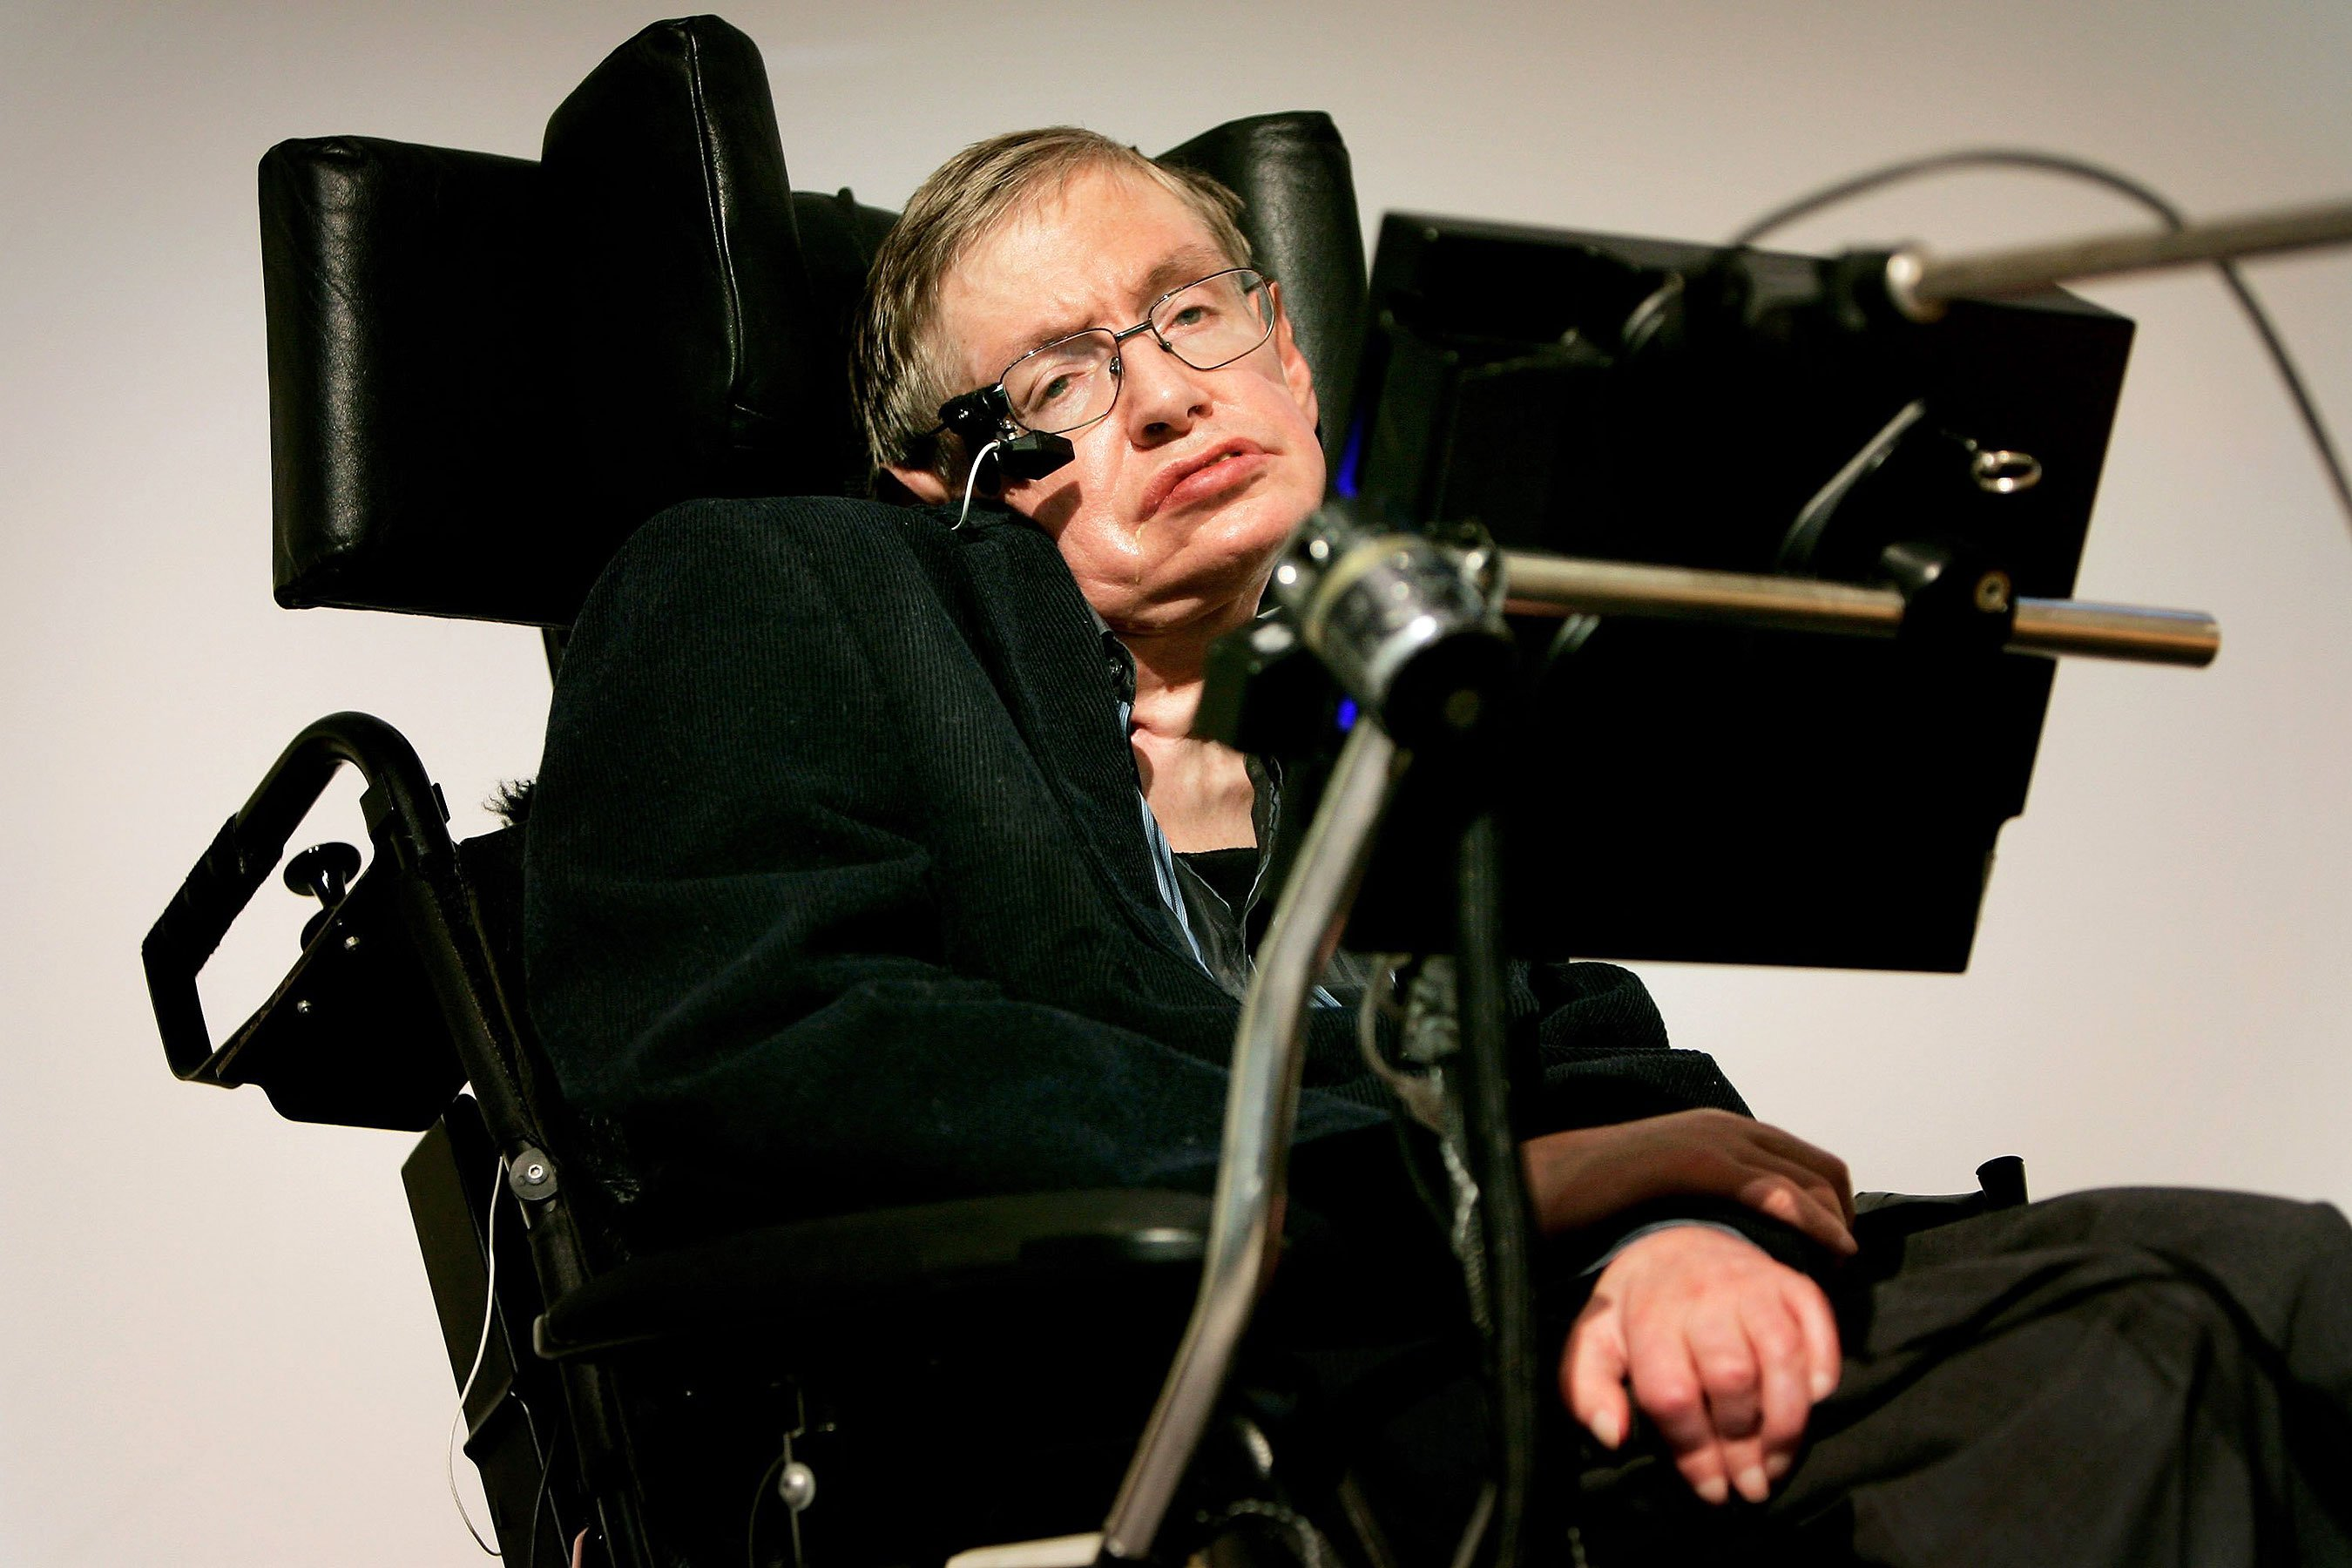 Stephen Hawking dead: Scientist, subject of 2014 film 'The Theory of Everything' dies at 76